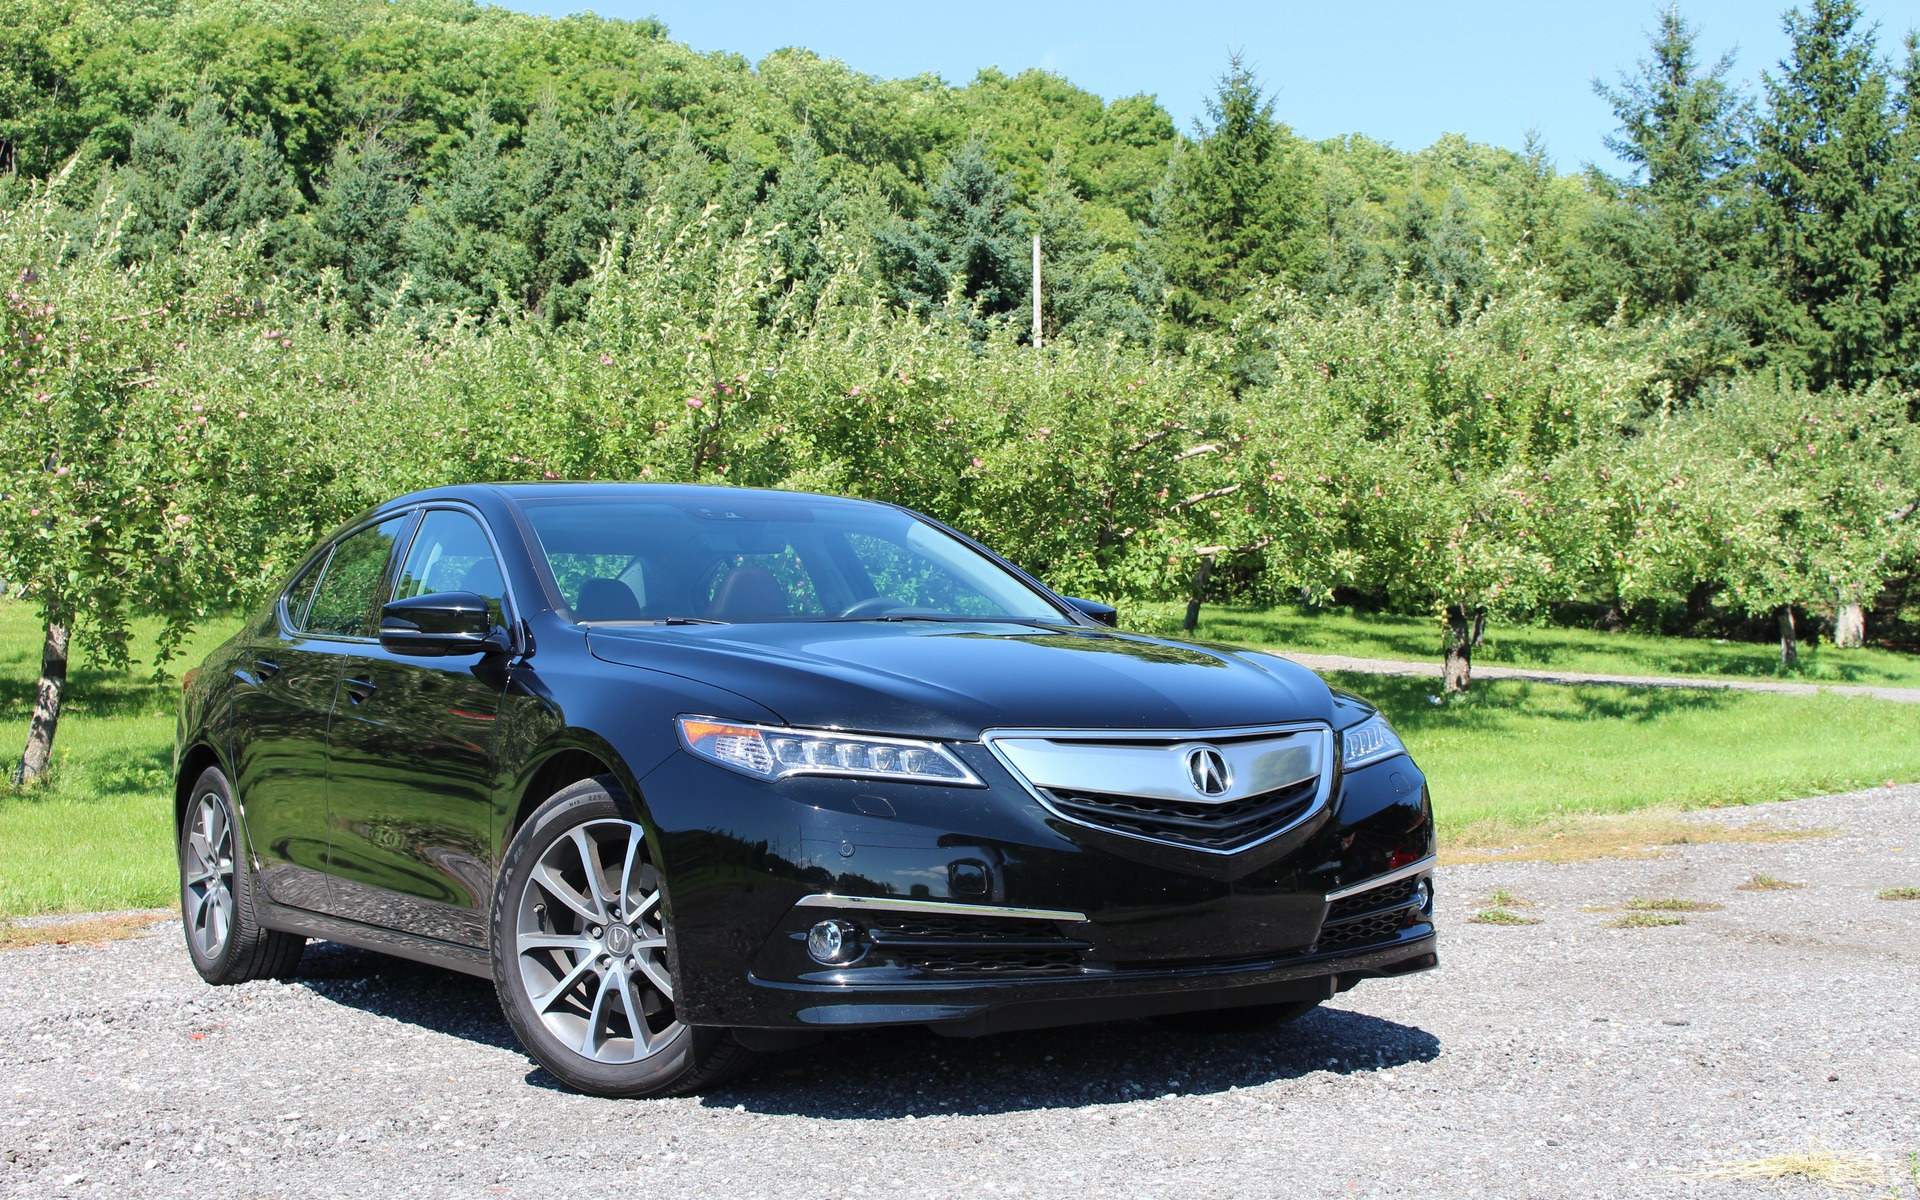 tlx certified inventory awd acura sh advance owned wadvance package used w pre sedan